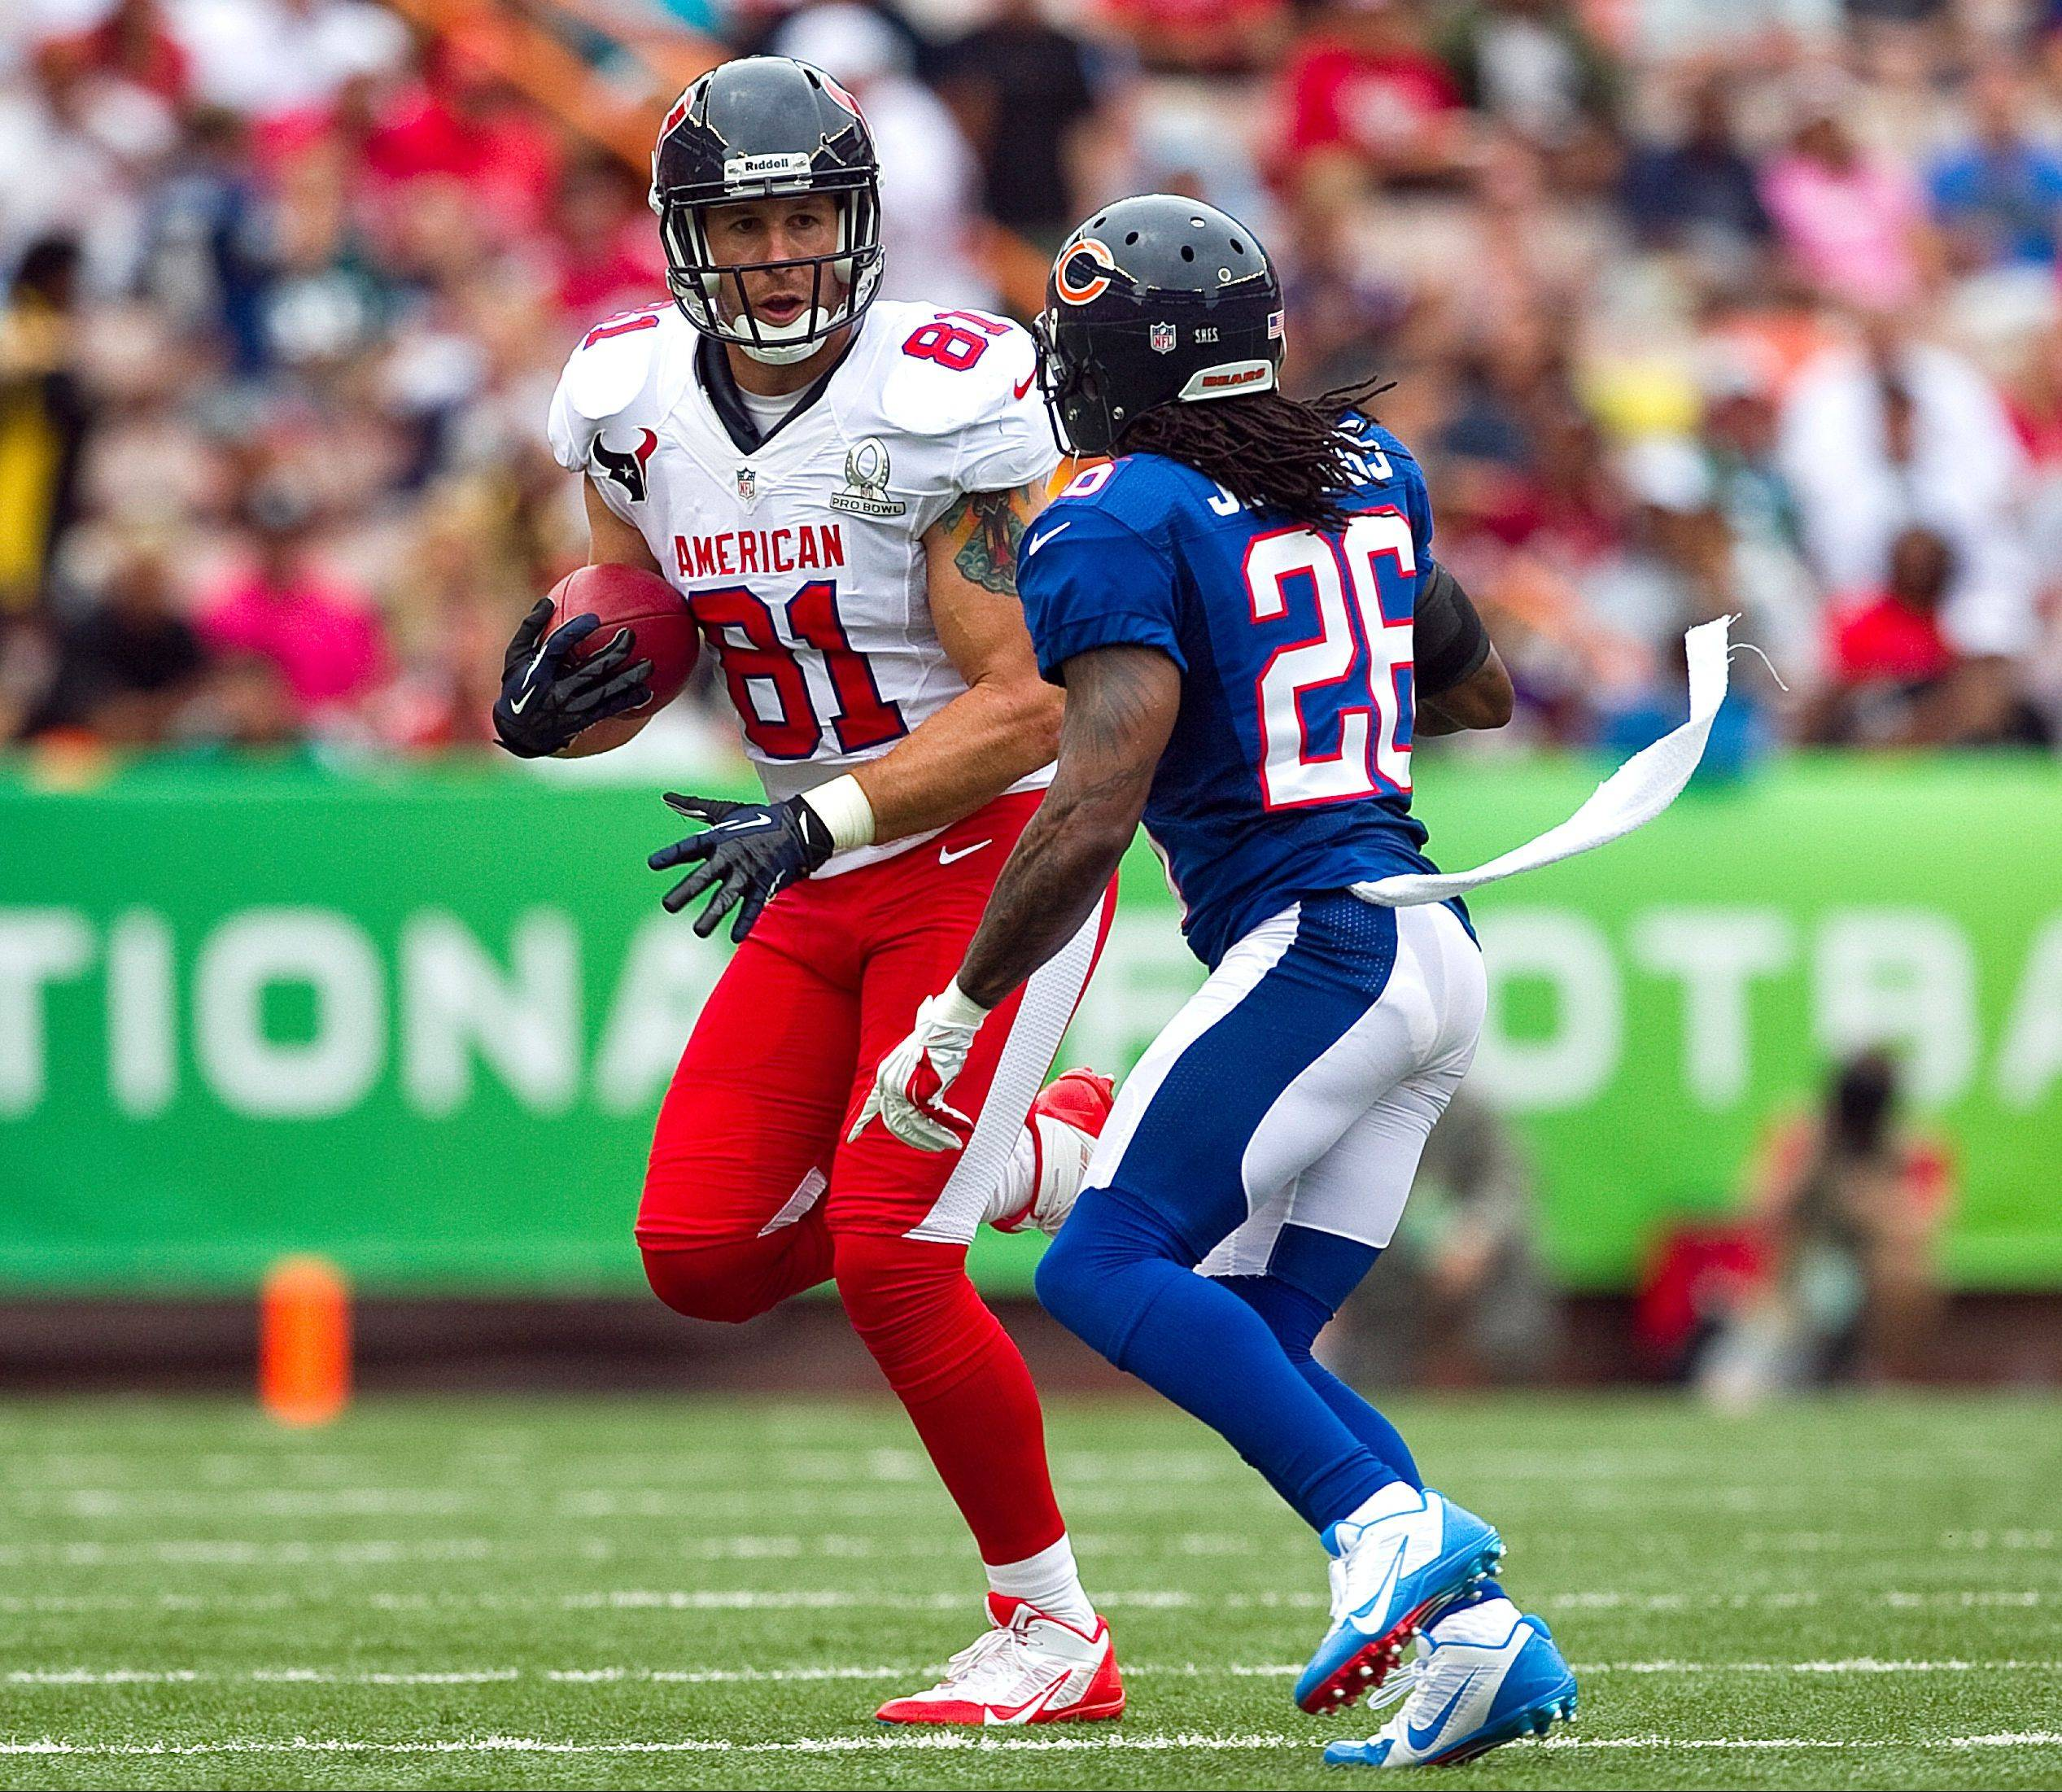 Bears cornerback Tim Jennings, right, of the NFC closes in on Houston Texans tight end Owen Daniels of the AFC in the third quarter of Sunday's Pro Bowl in Honolulu.